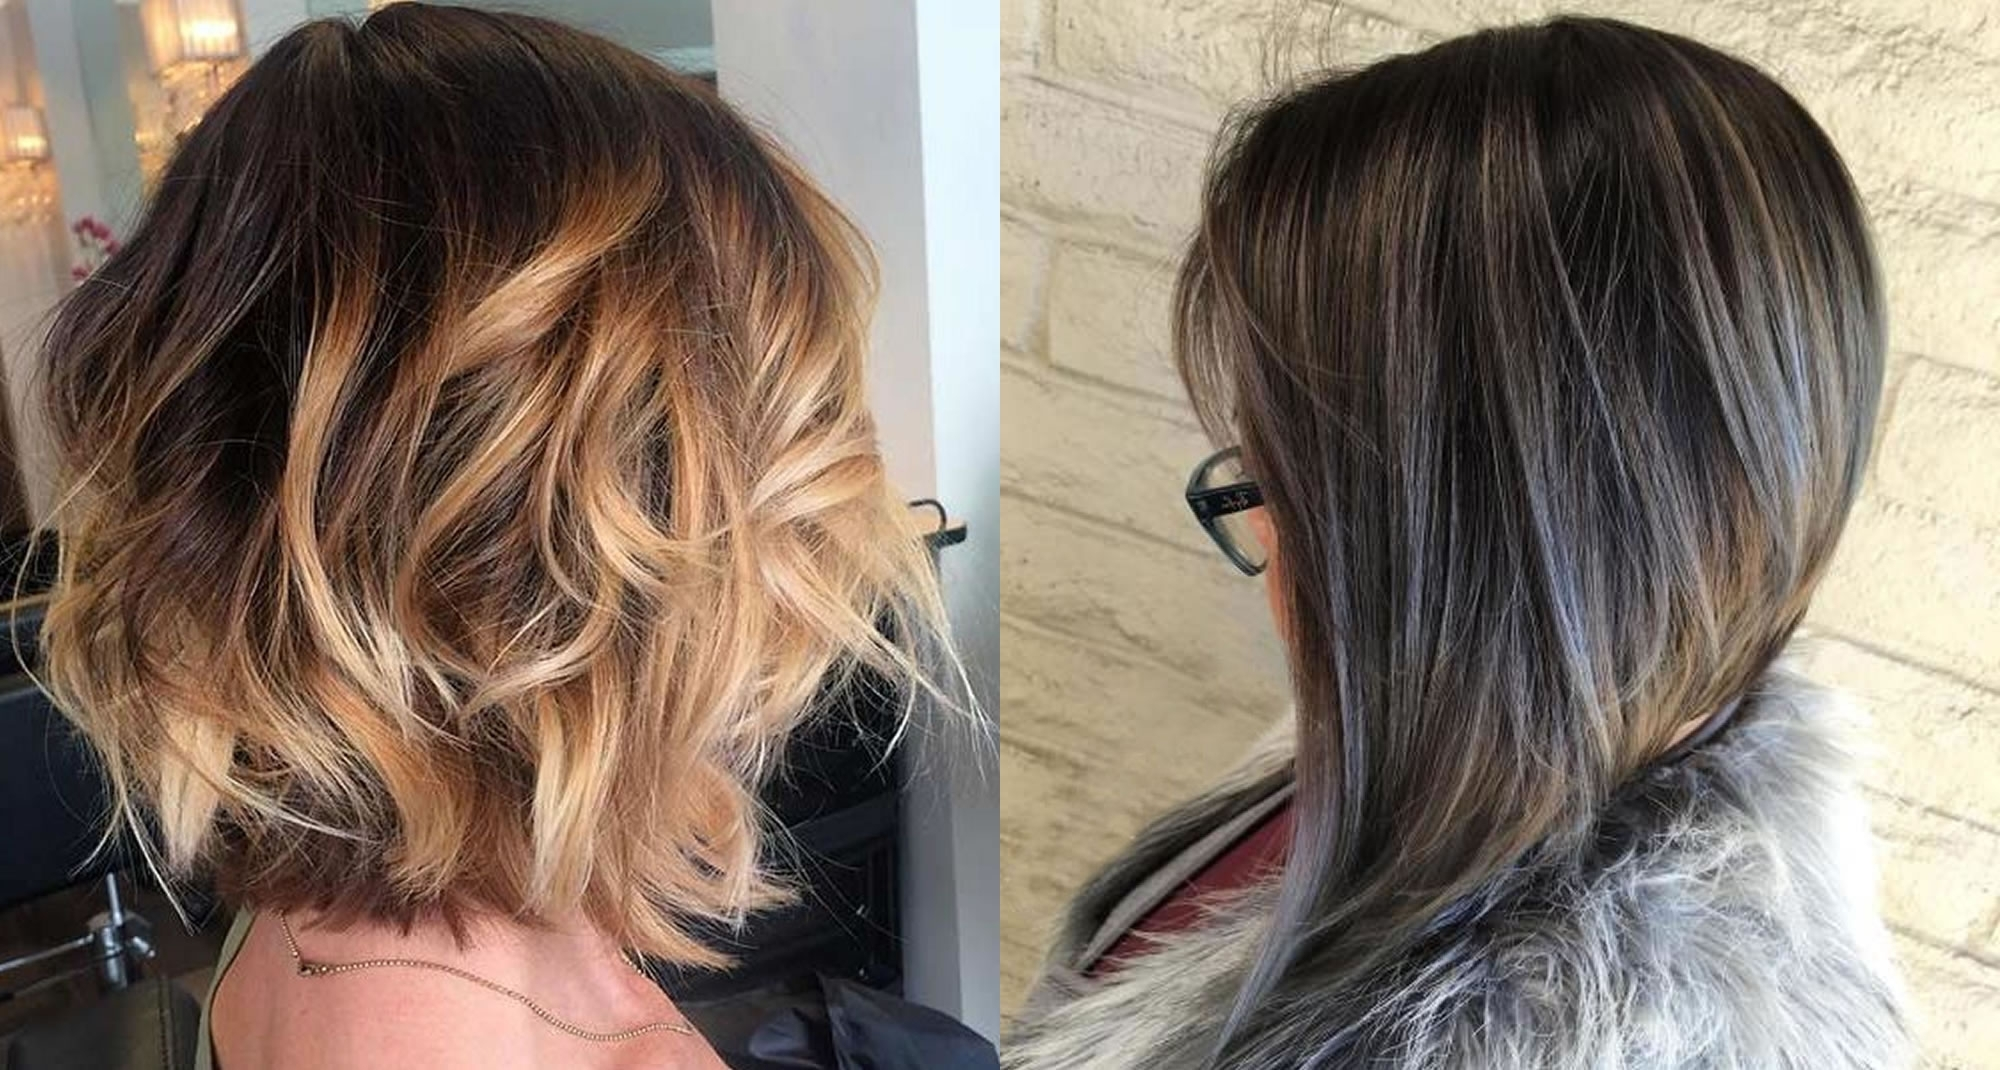 Most Current Shaggy Pixie Hairstyles With Balayage Highlights Regarding The Best 50 Balayage Bob Hairstyles (short+long) & Highlights – Page (View 7 of 20)